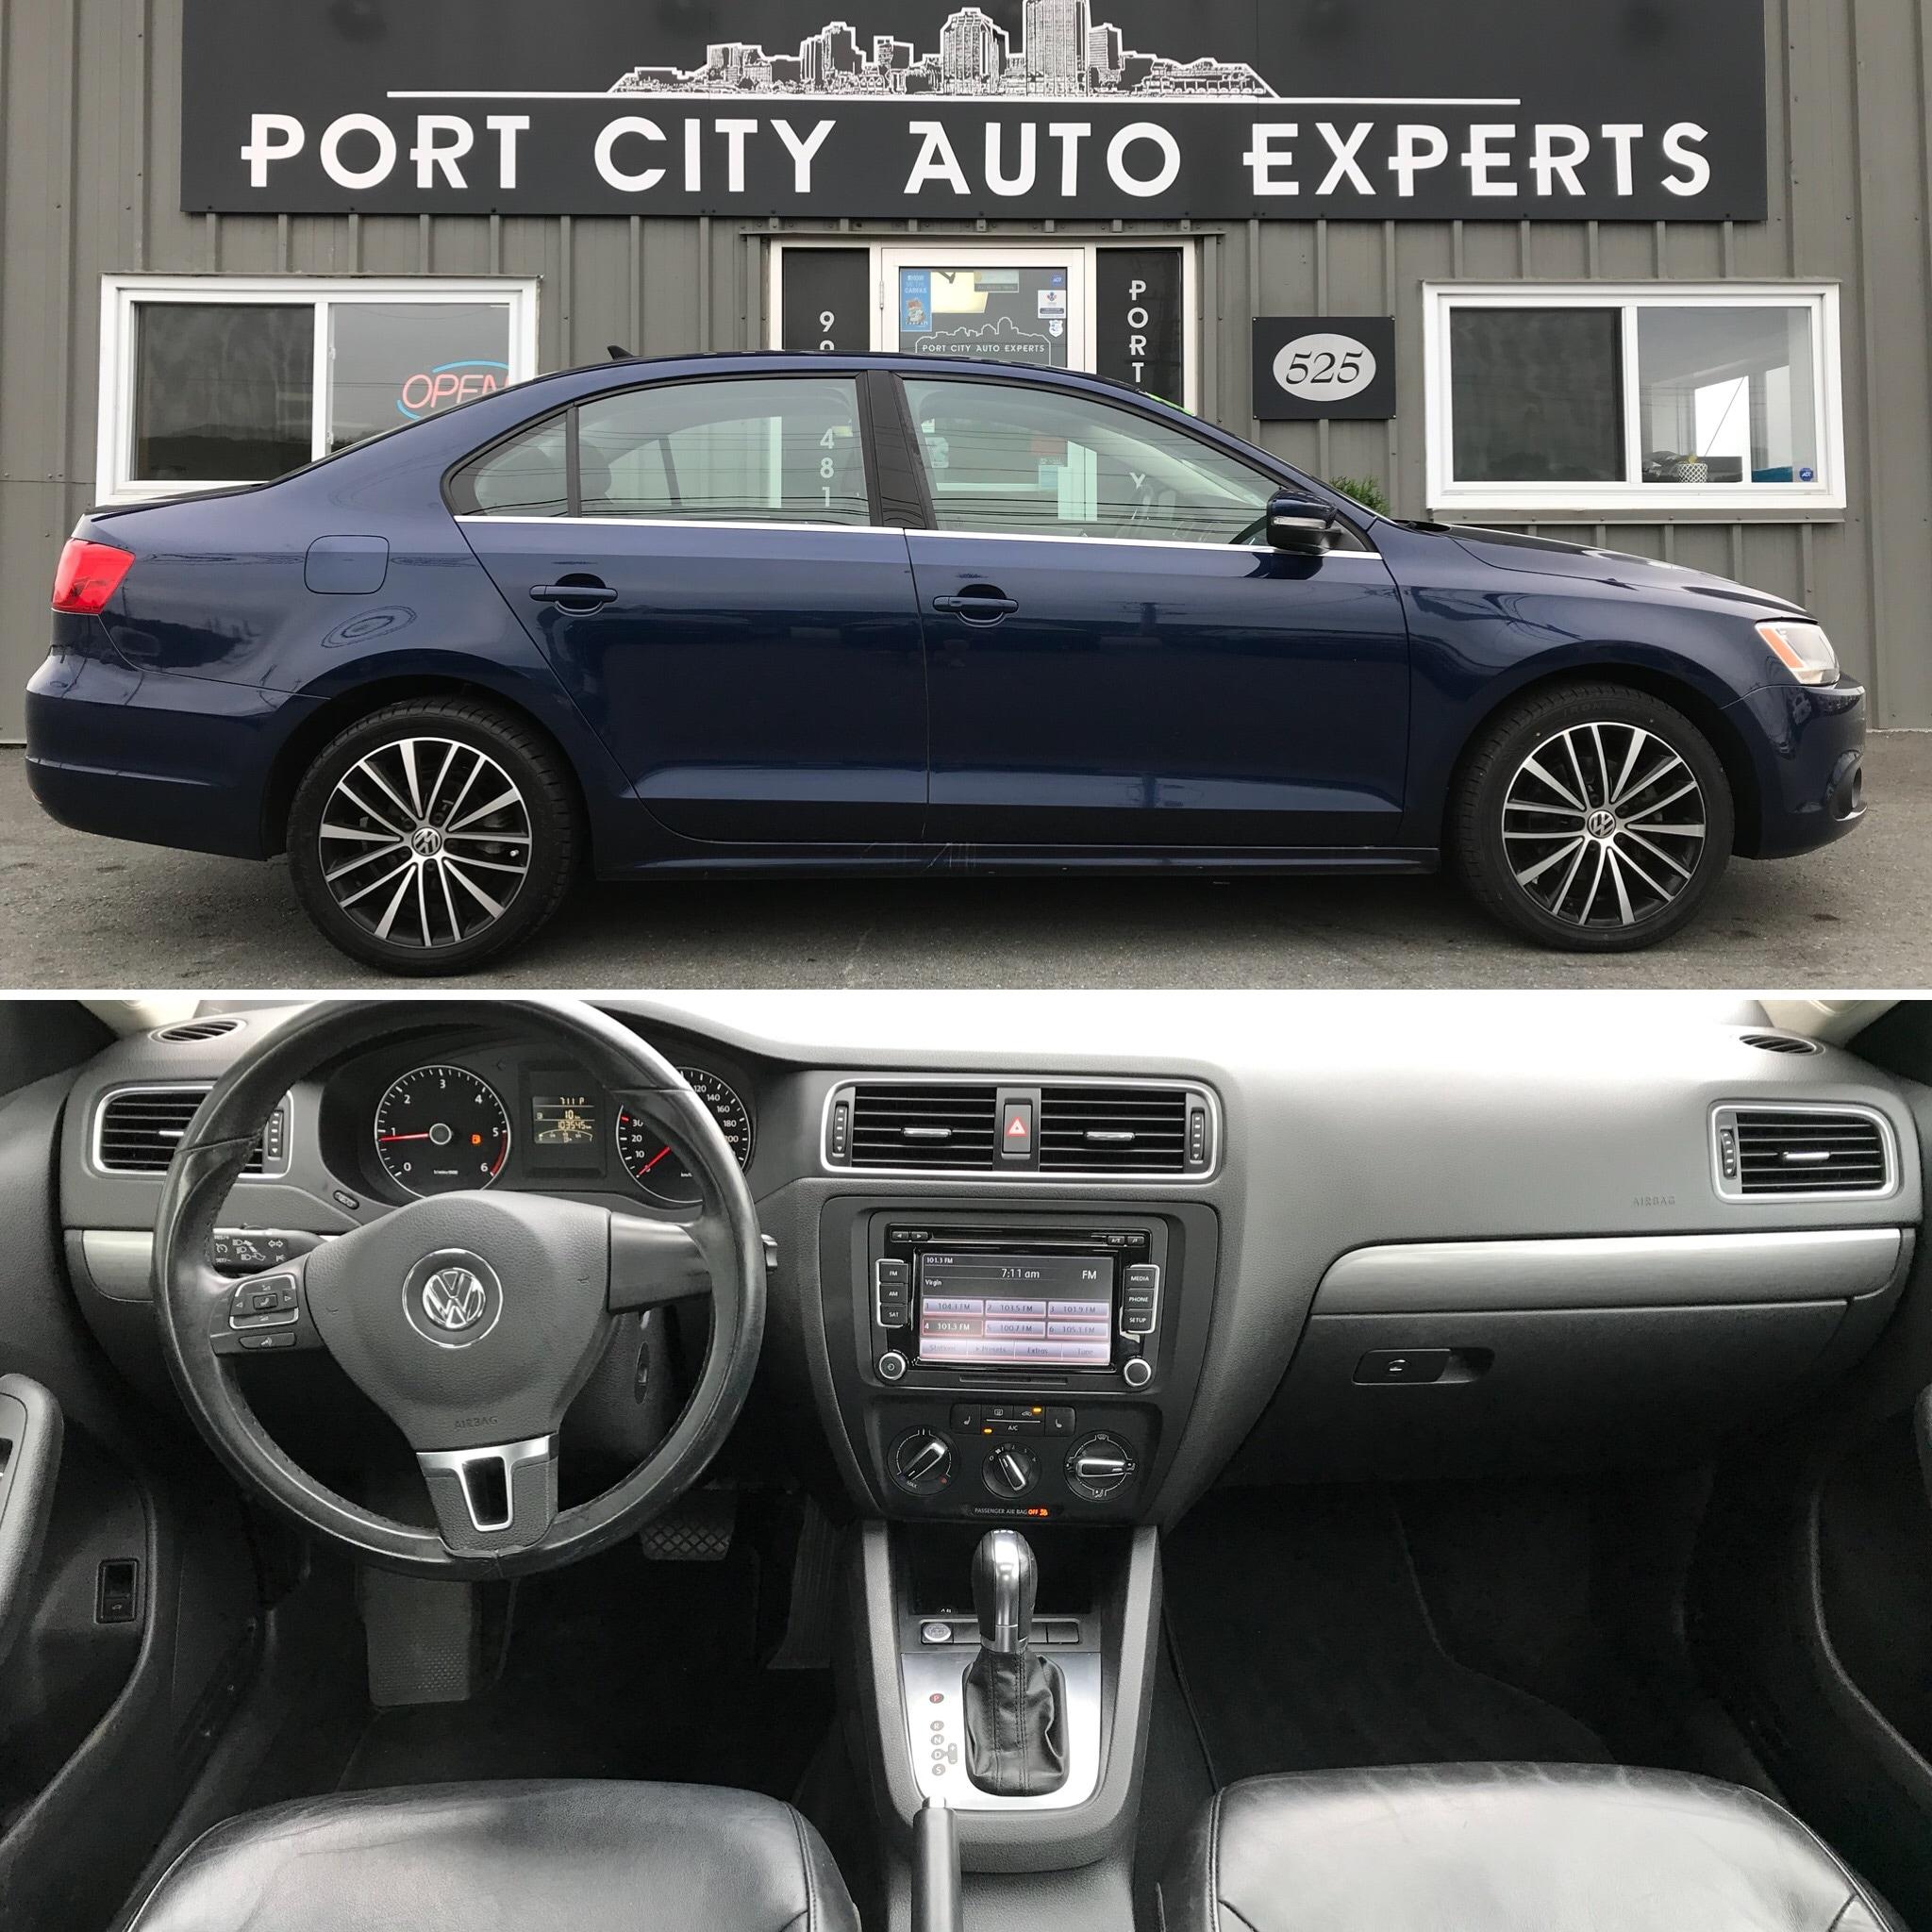 Used 2014 Volkswagen Jetta For Sale At Port City Auto Experts Vin 3vwll7aj5em401260